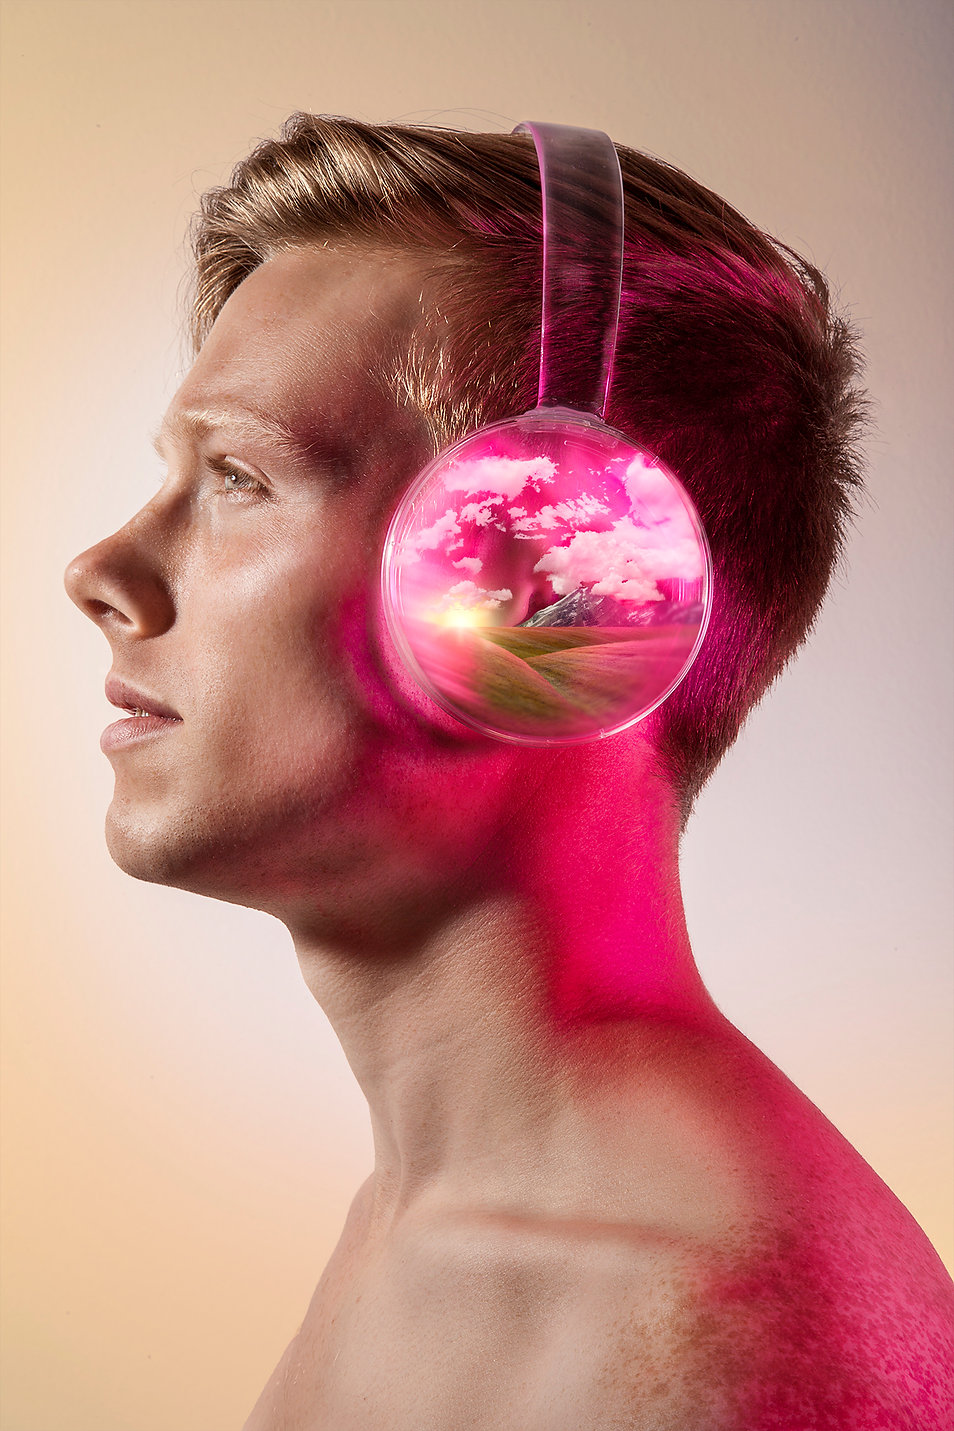 audio book music headphone landscape composite conceptual commercial advertising photography